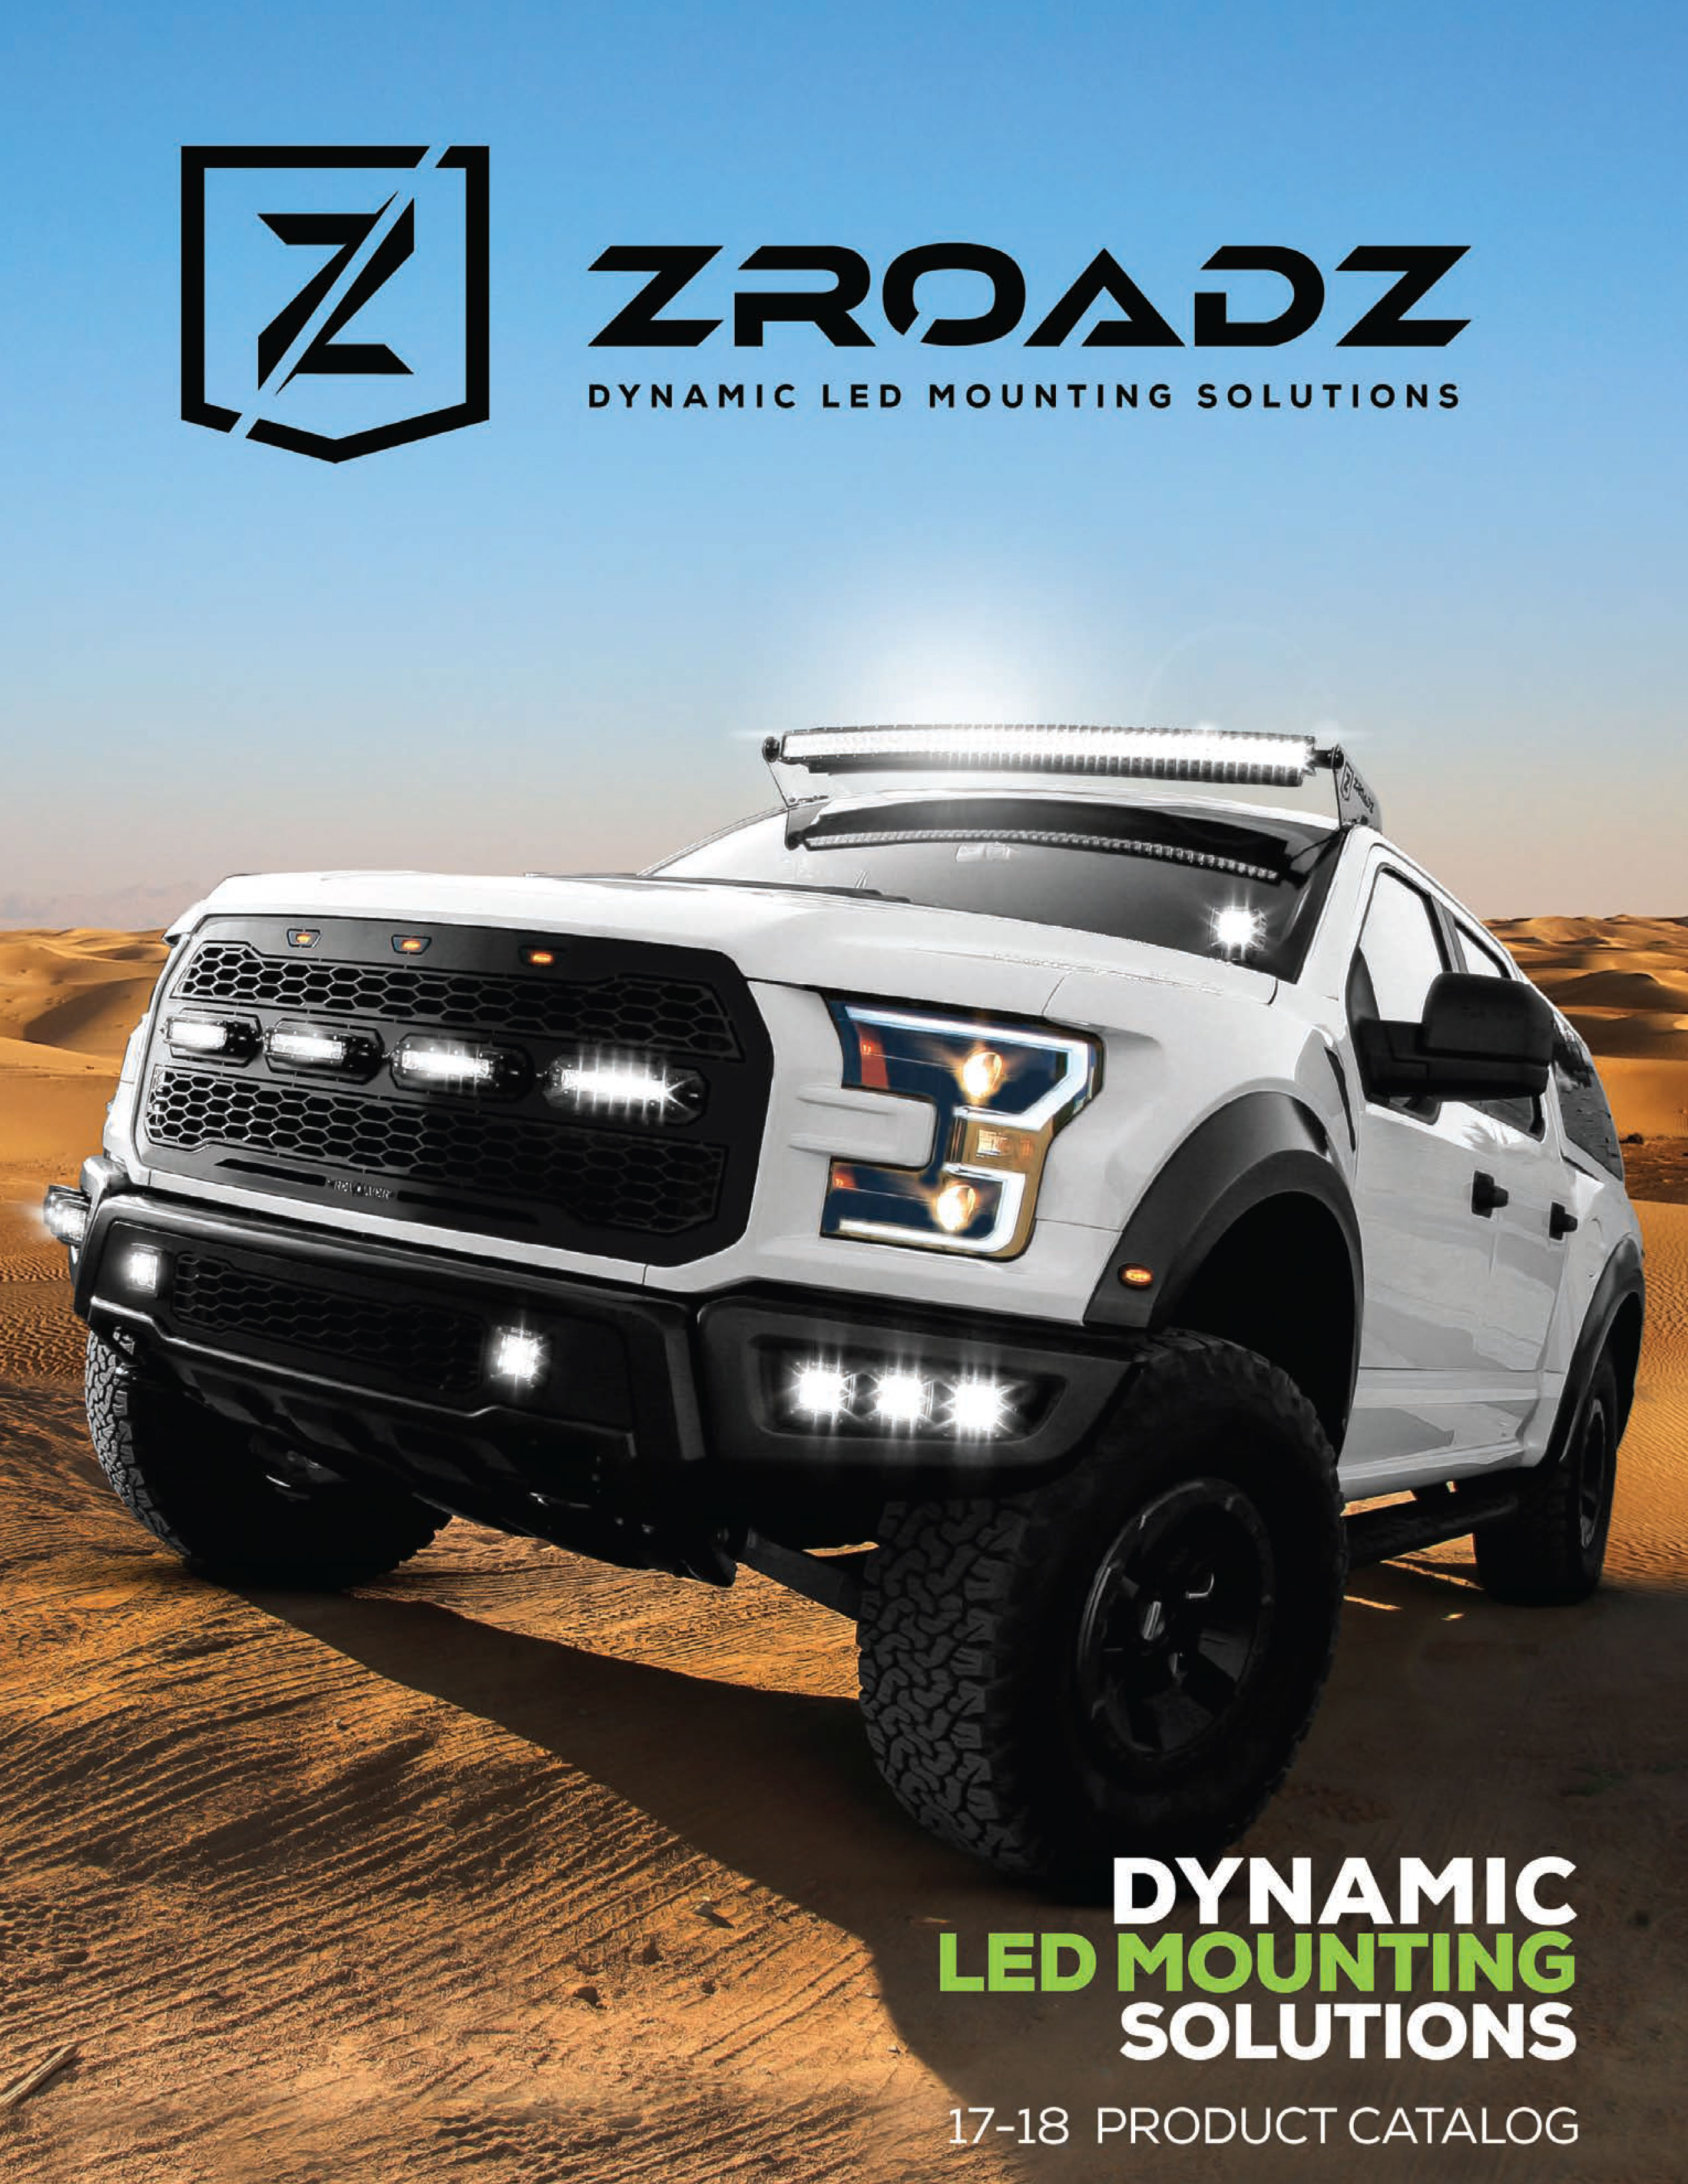 2017-2018 ZROADZ Dynamic LED Mounting Solutions Product Catalog